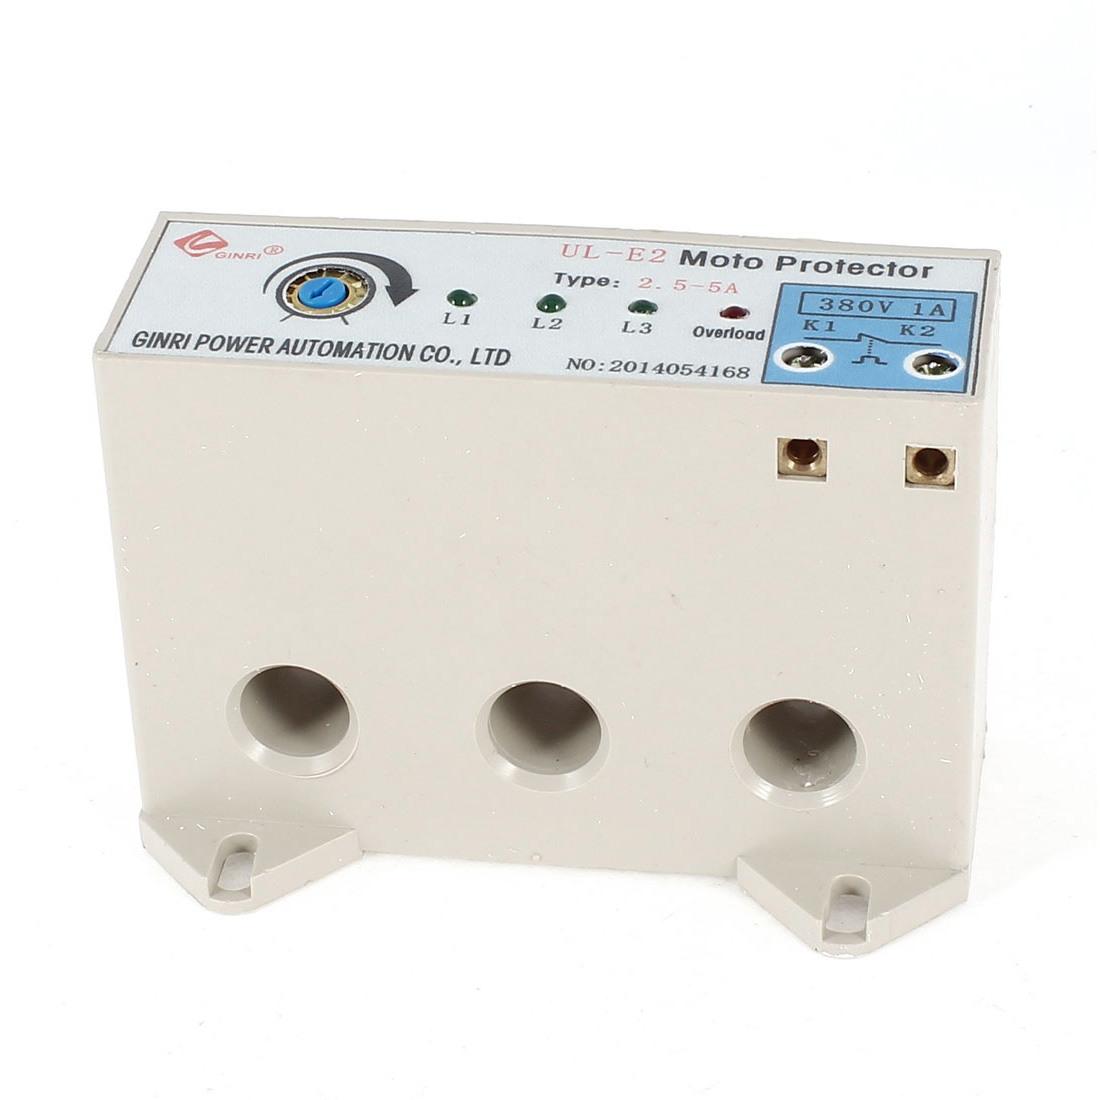 UL-E2 3 Phase Adjustable Current Motor Circuit Protector 2.5-5 Ampe